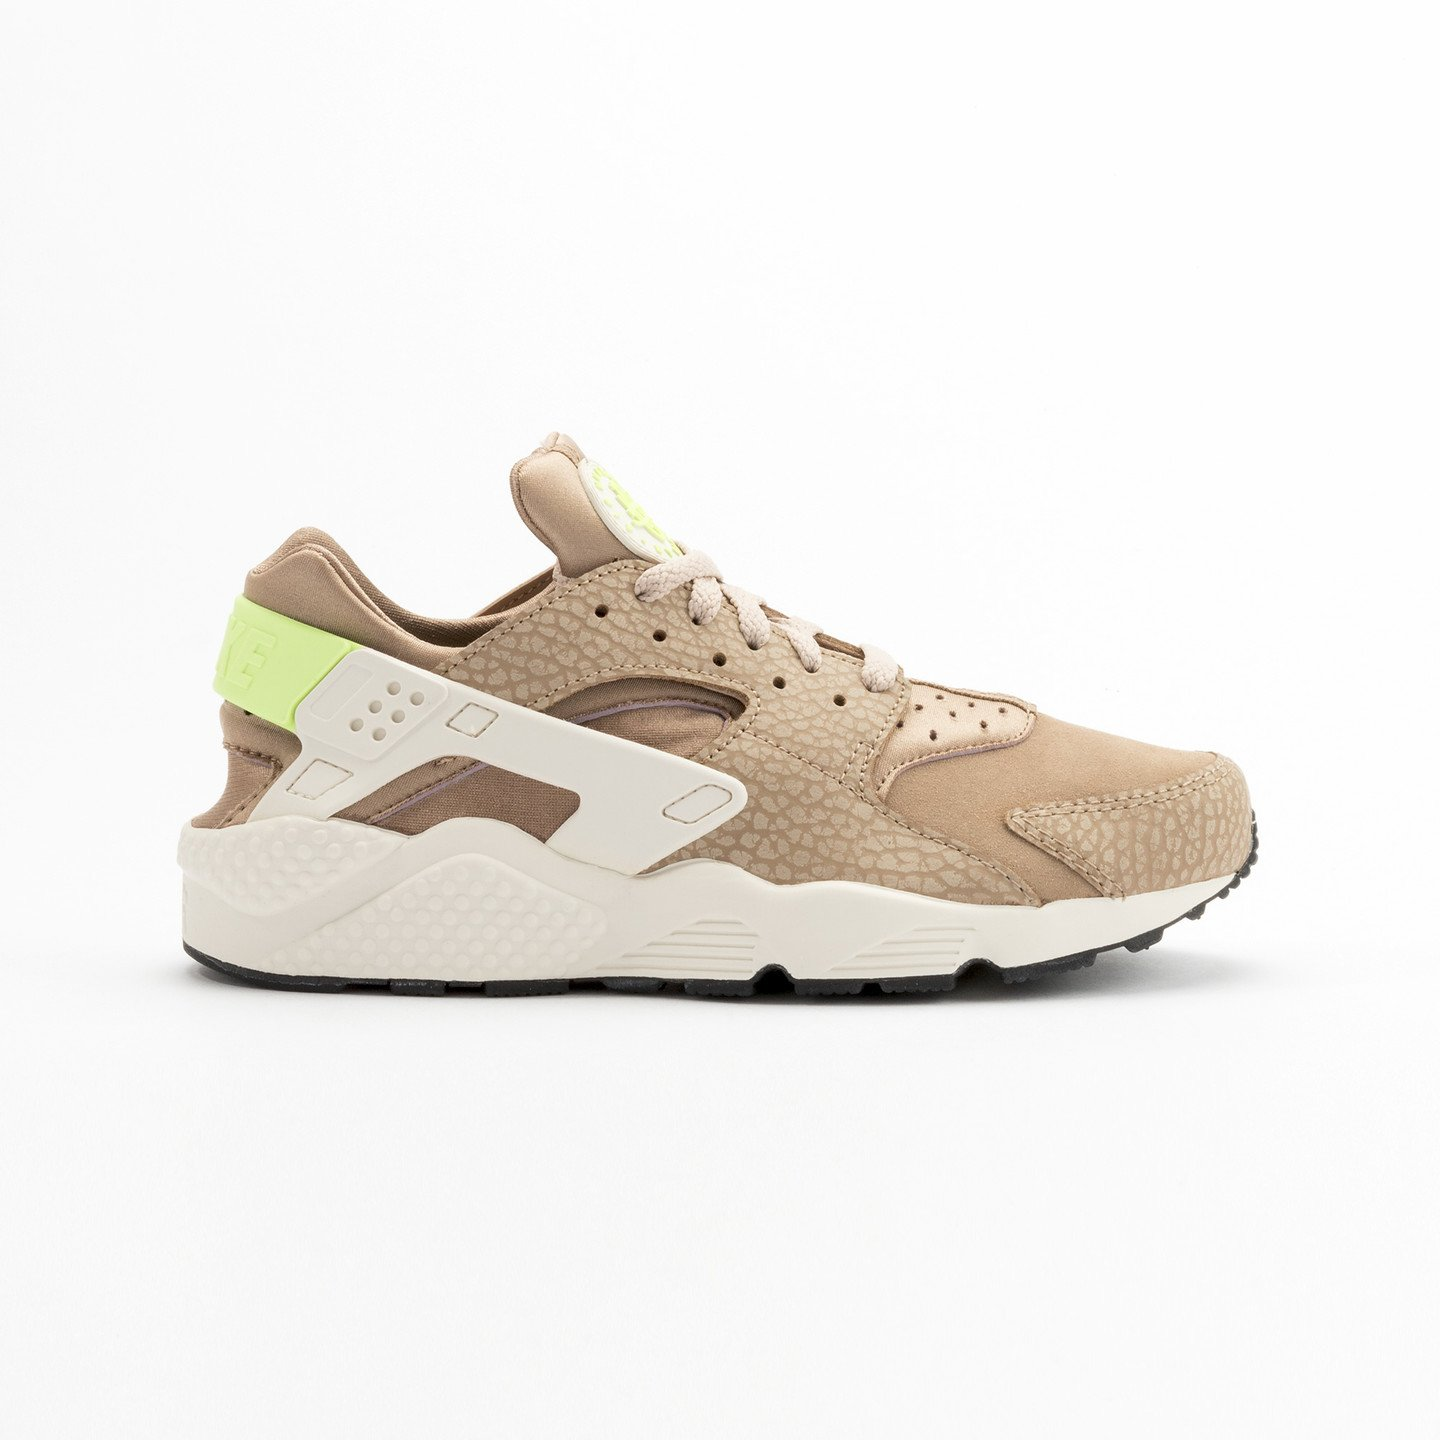 Nike Air Huarache Run Premium Desert Camo / Sea Glass / Ghost Green 704830-203-39